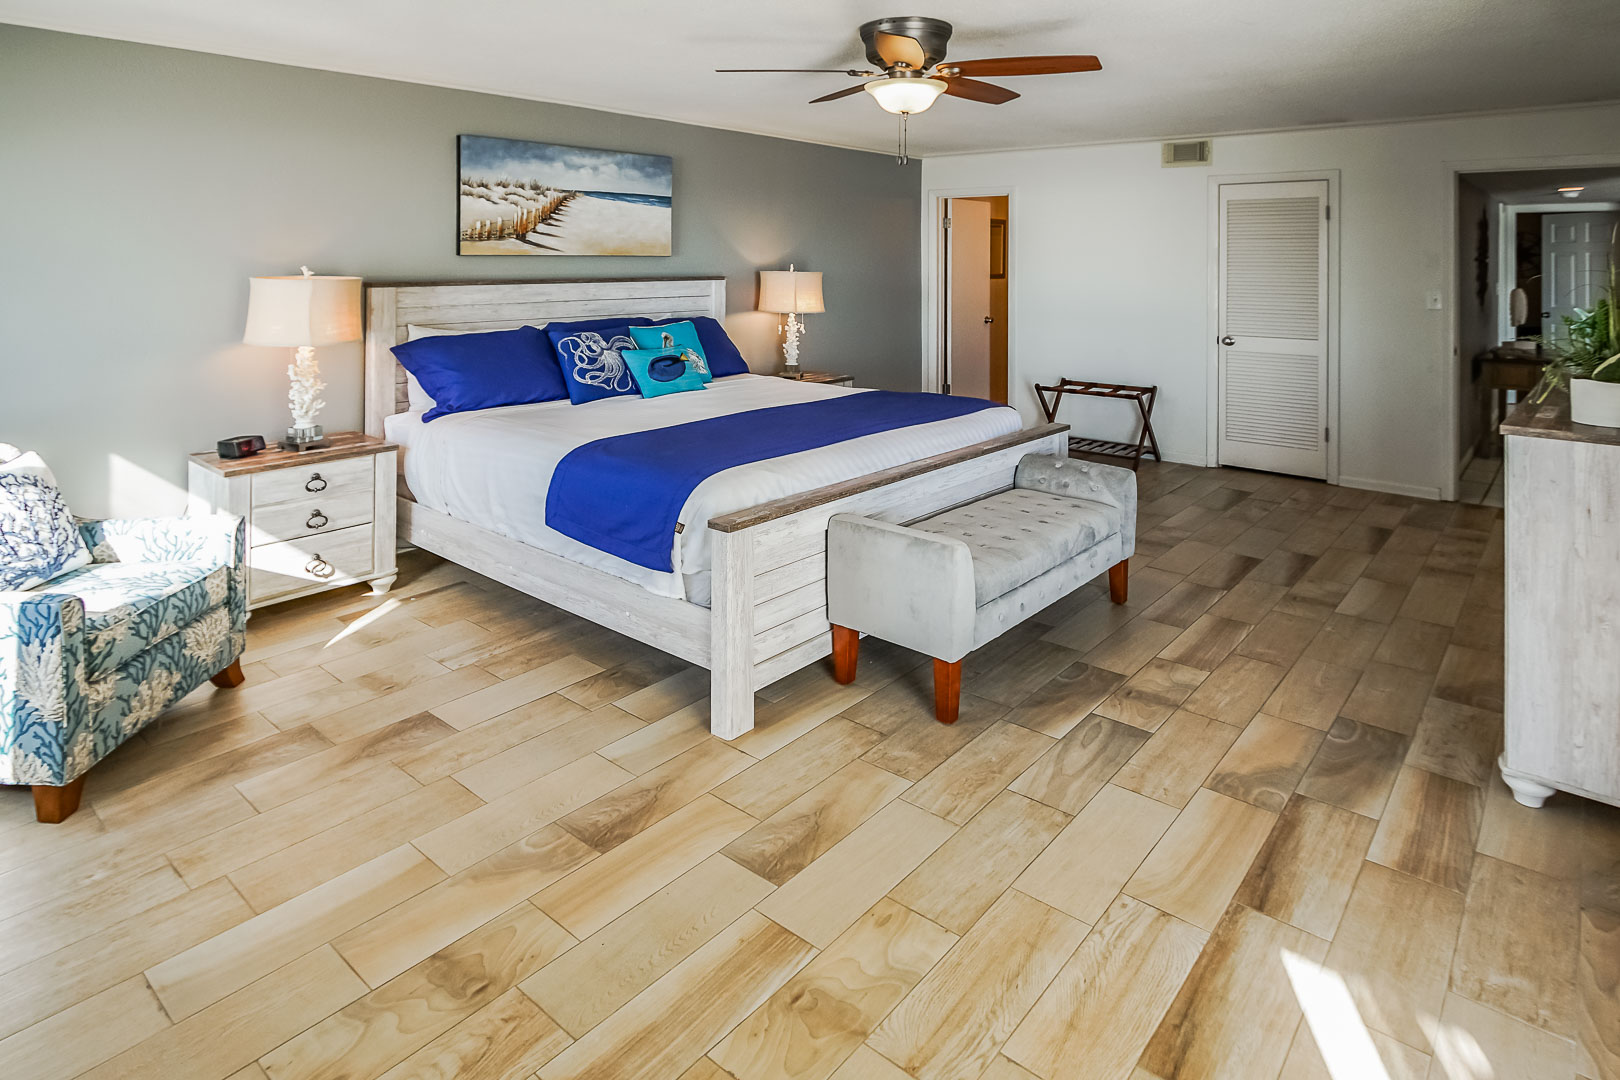 A spacious master bedroom at VRI's Shoreline Towers in Gulf Shores, Alabama.